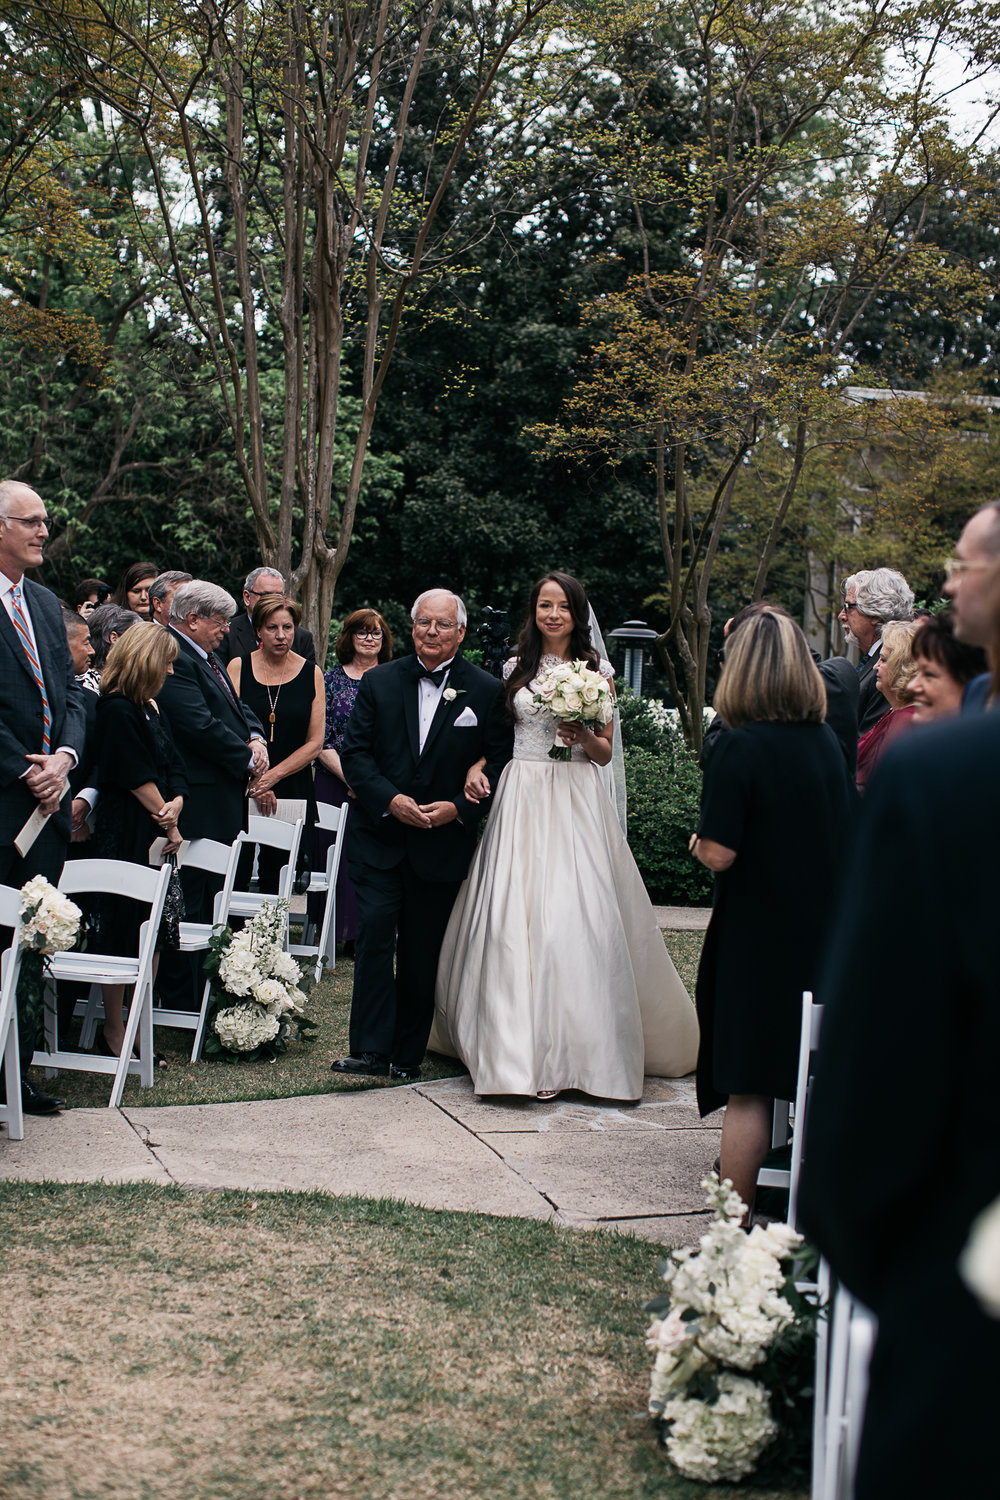 HannahandAndrew-thewarmtharoundyou-wedding10.jpg